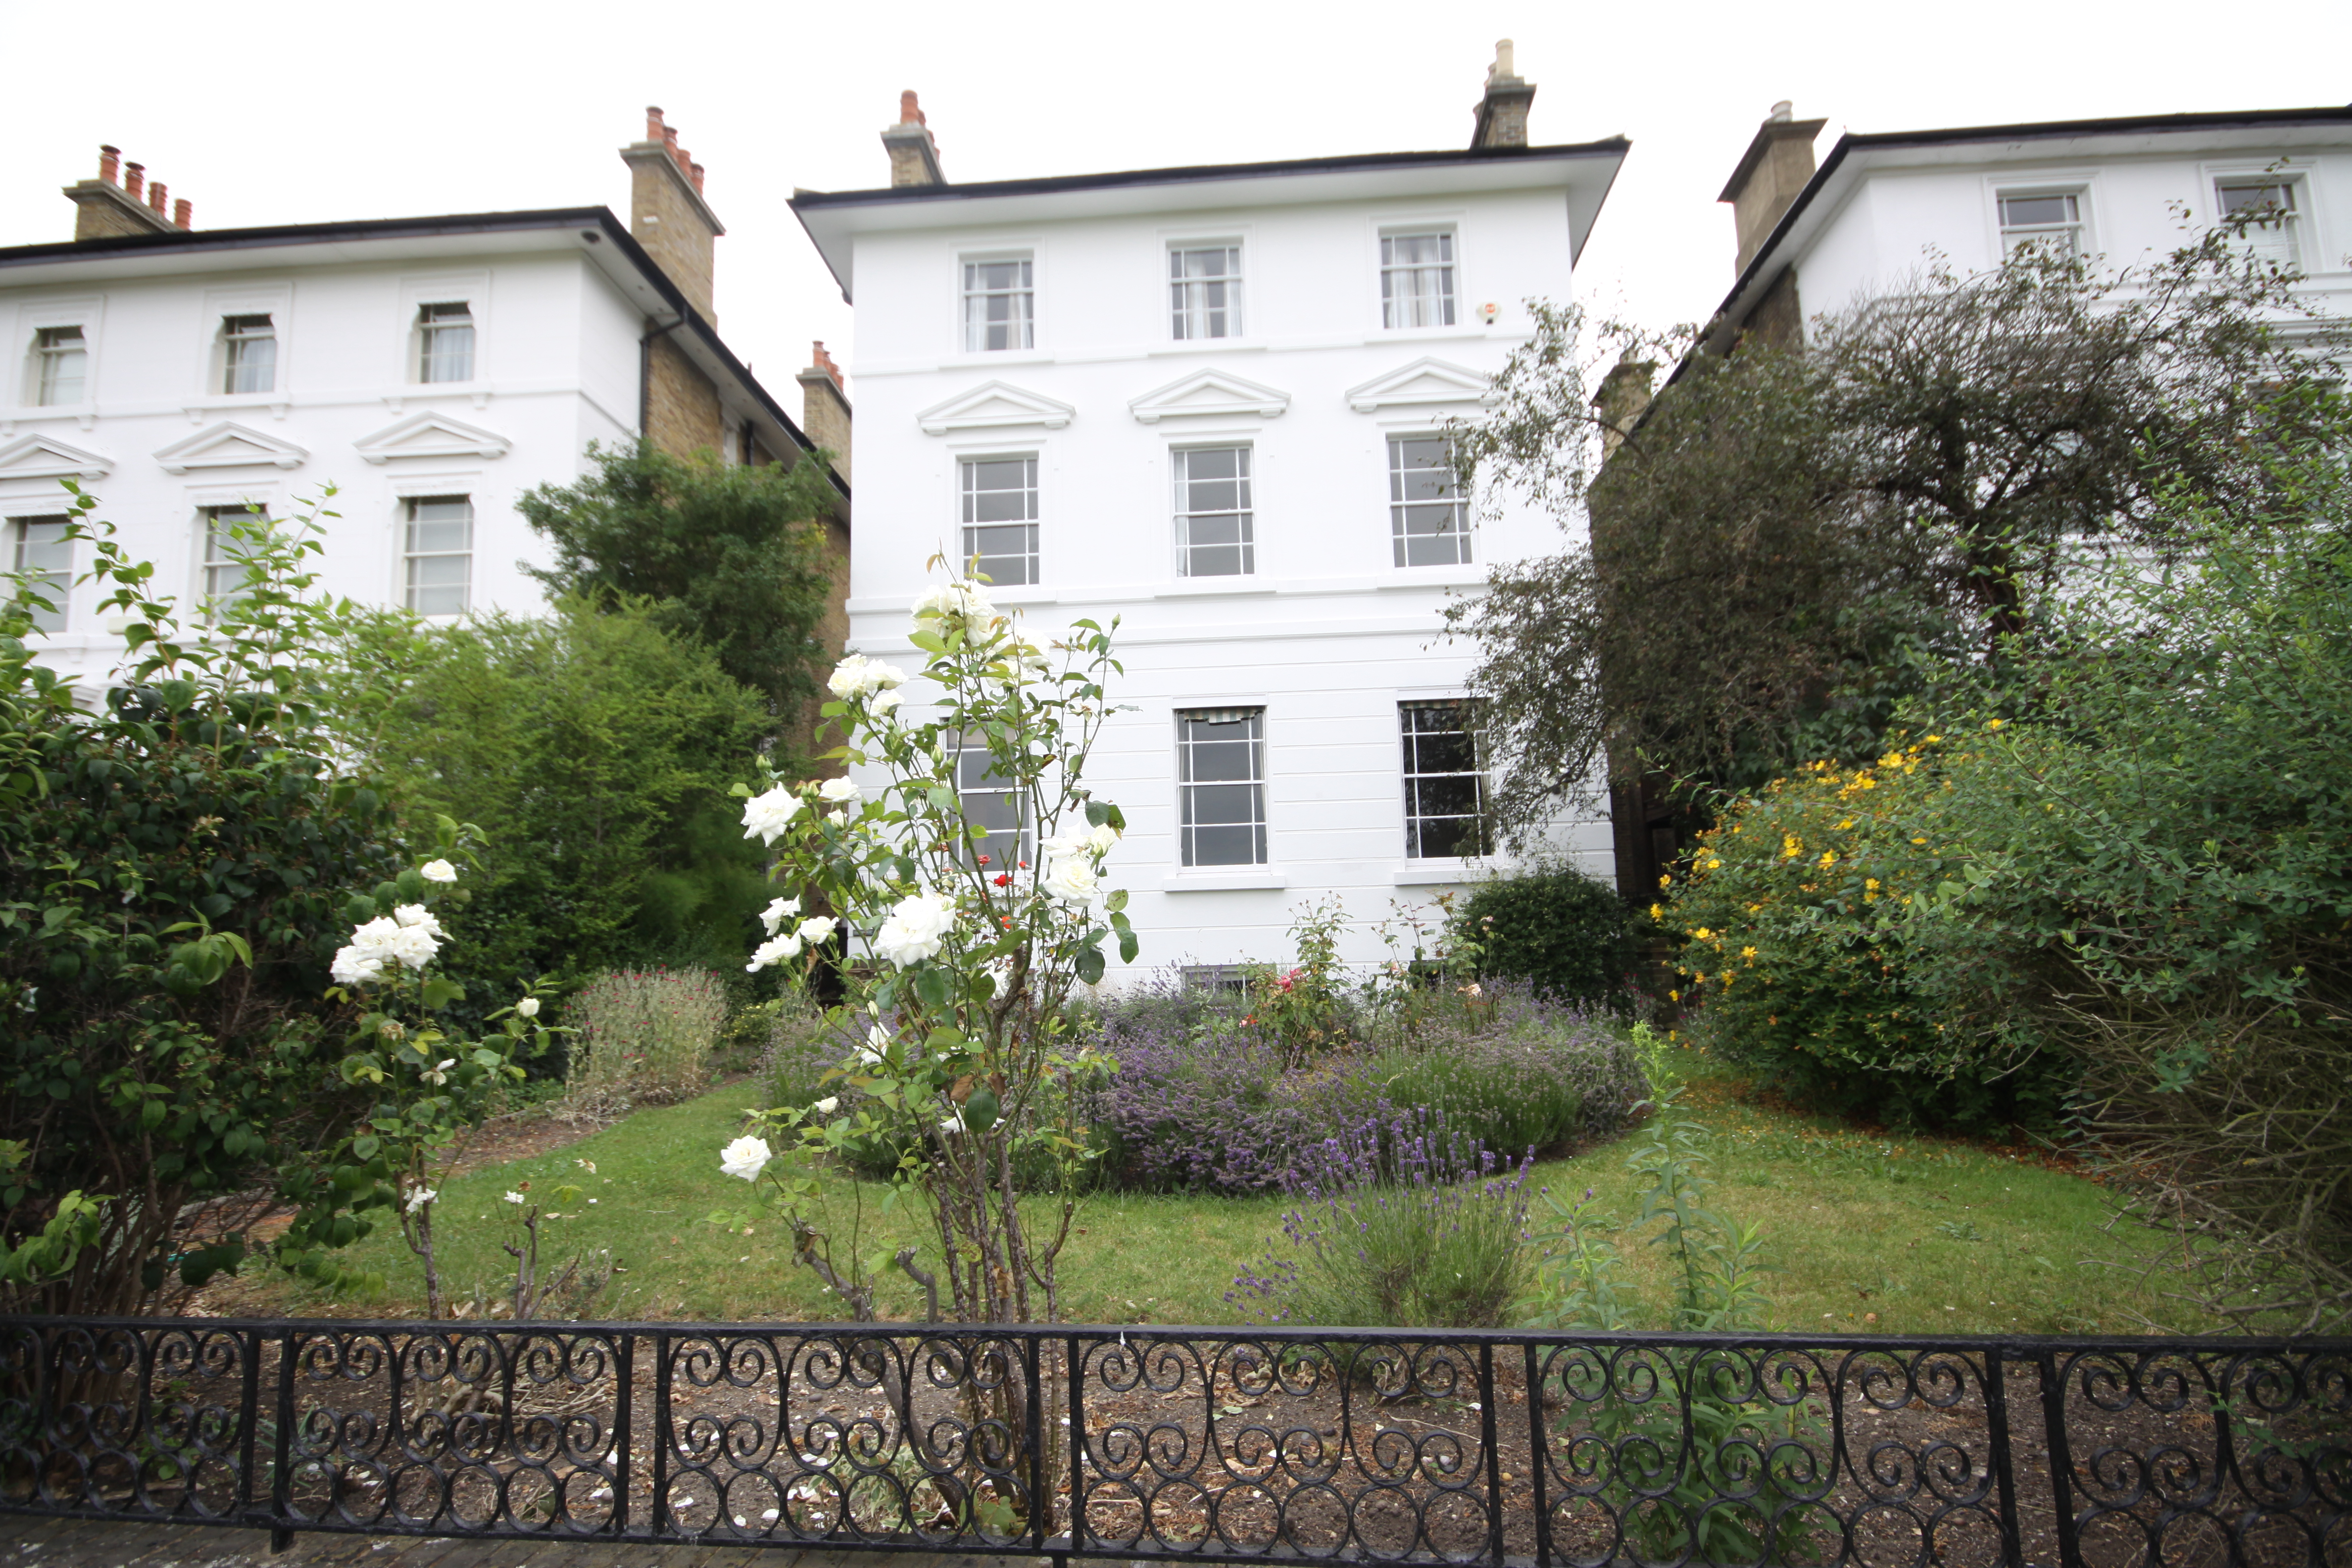 VANBRUGH TERRACE, BLACKHEATH SE3